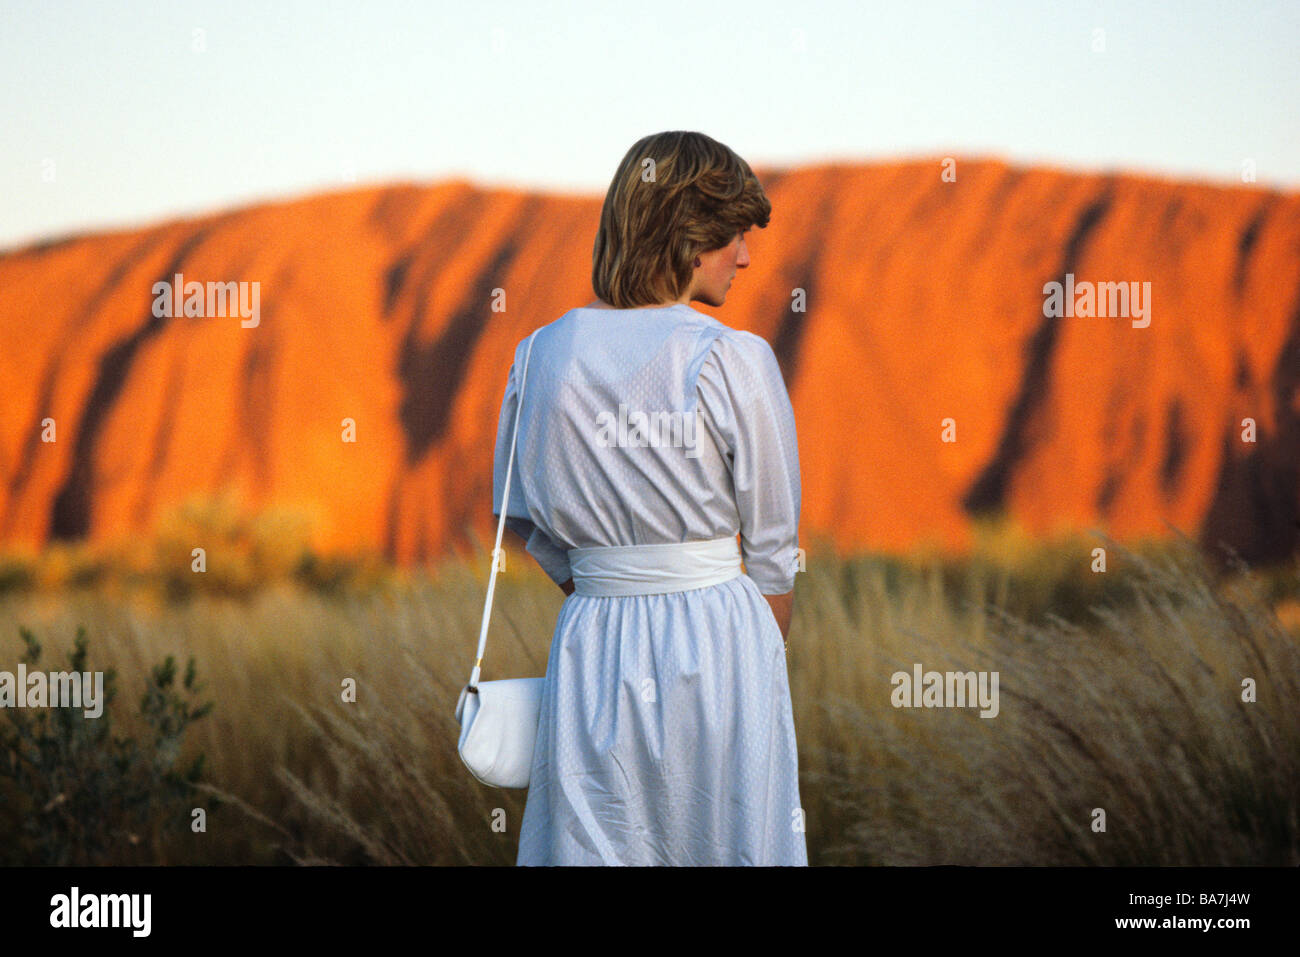 La princesse Diana à Uluru watches le coucher de soleil sur Ayers Rock mars1983 Photo Stock